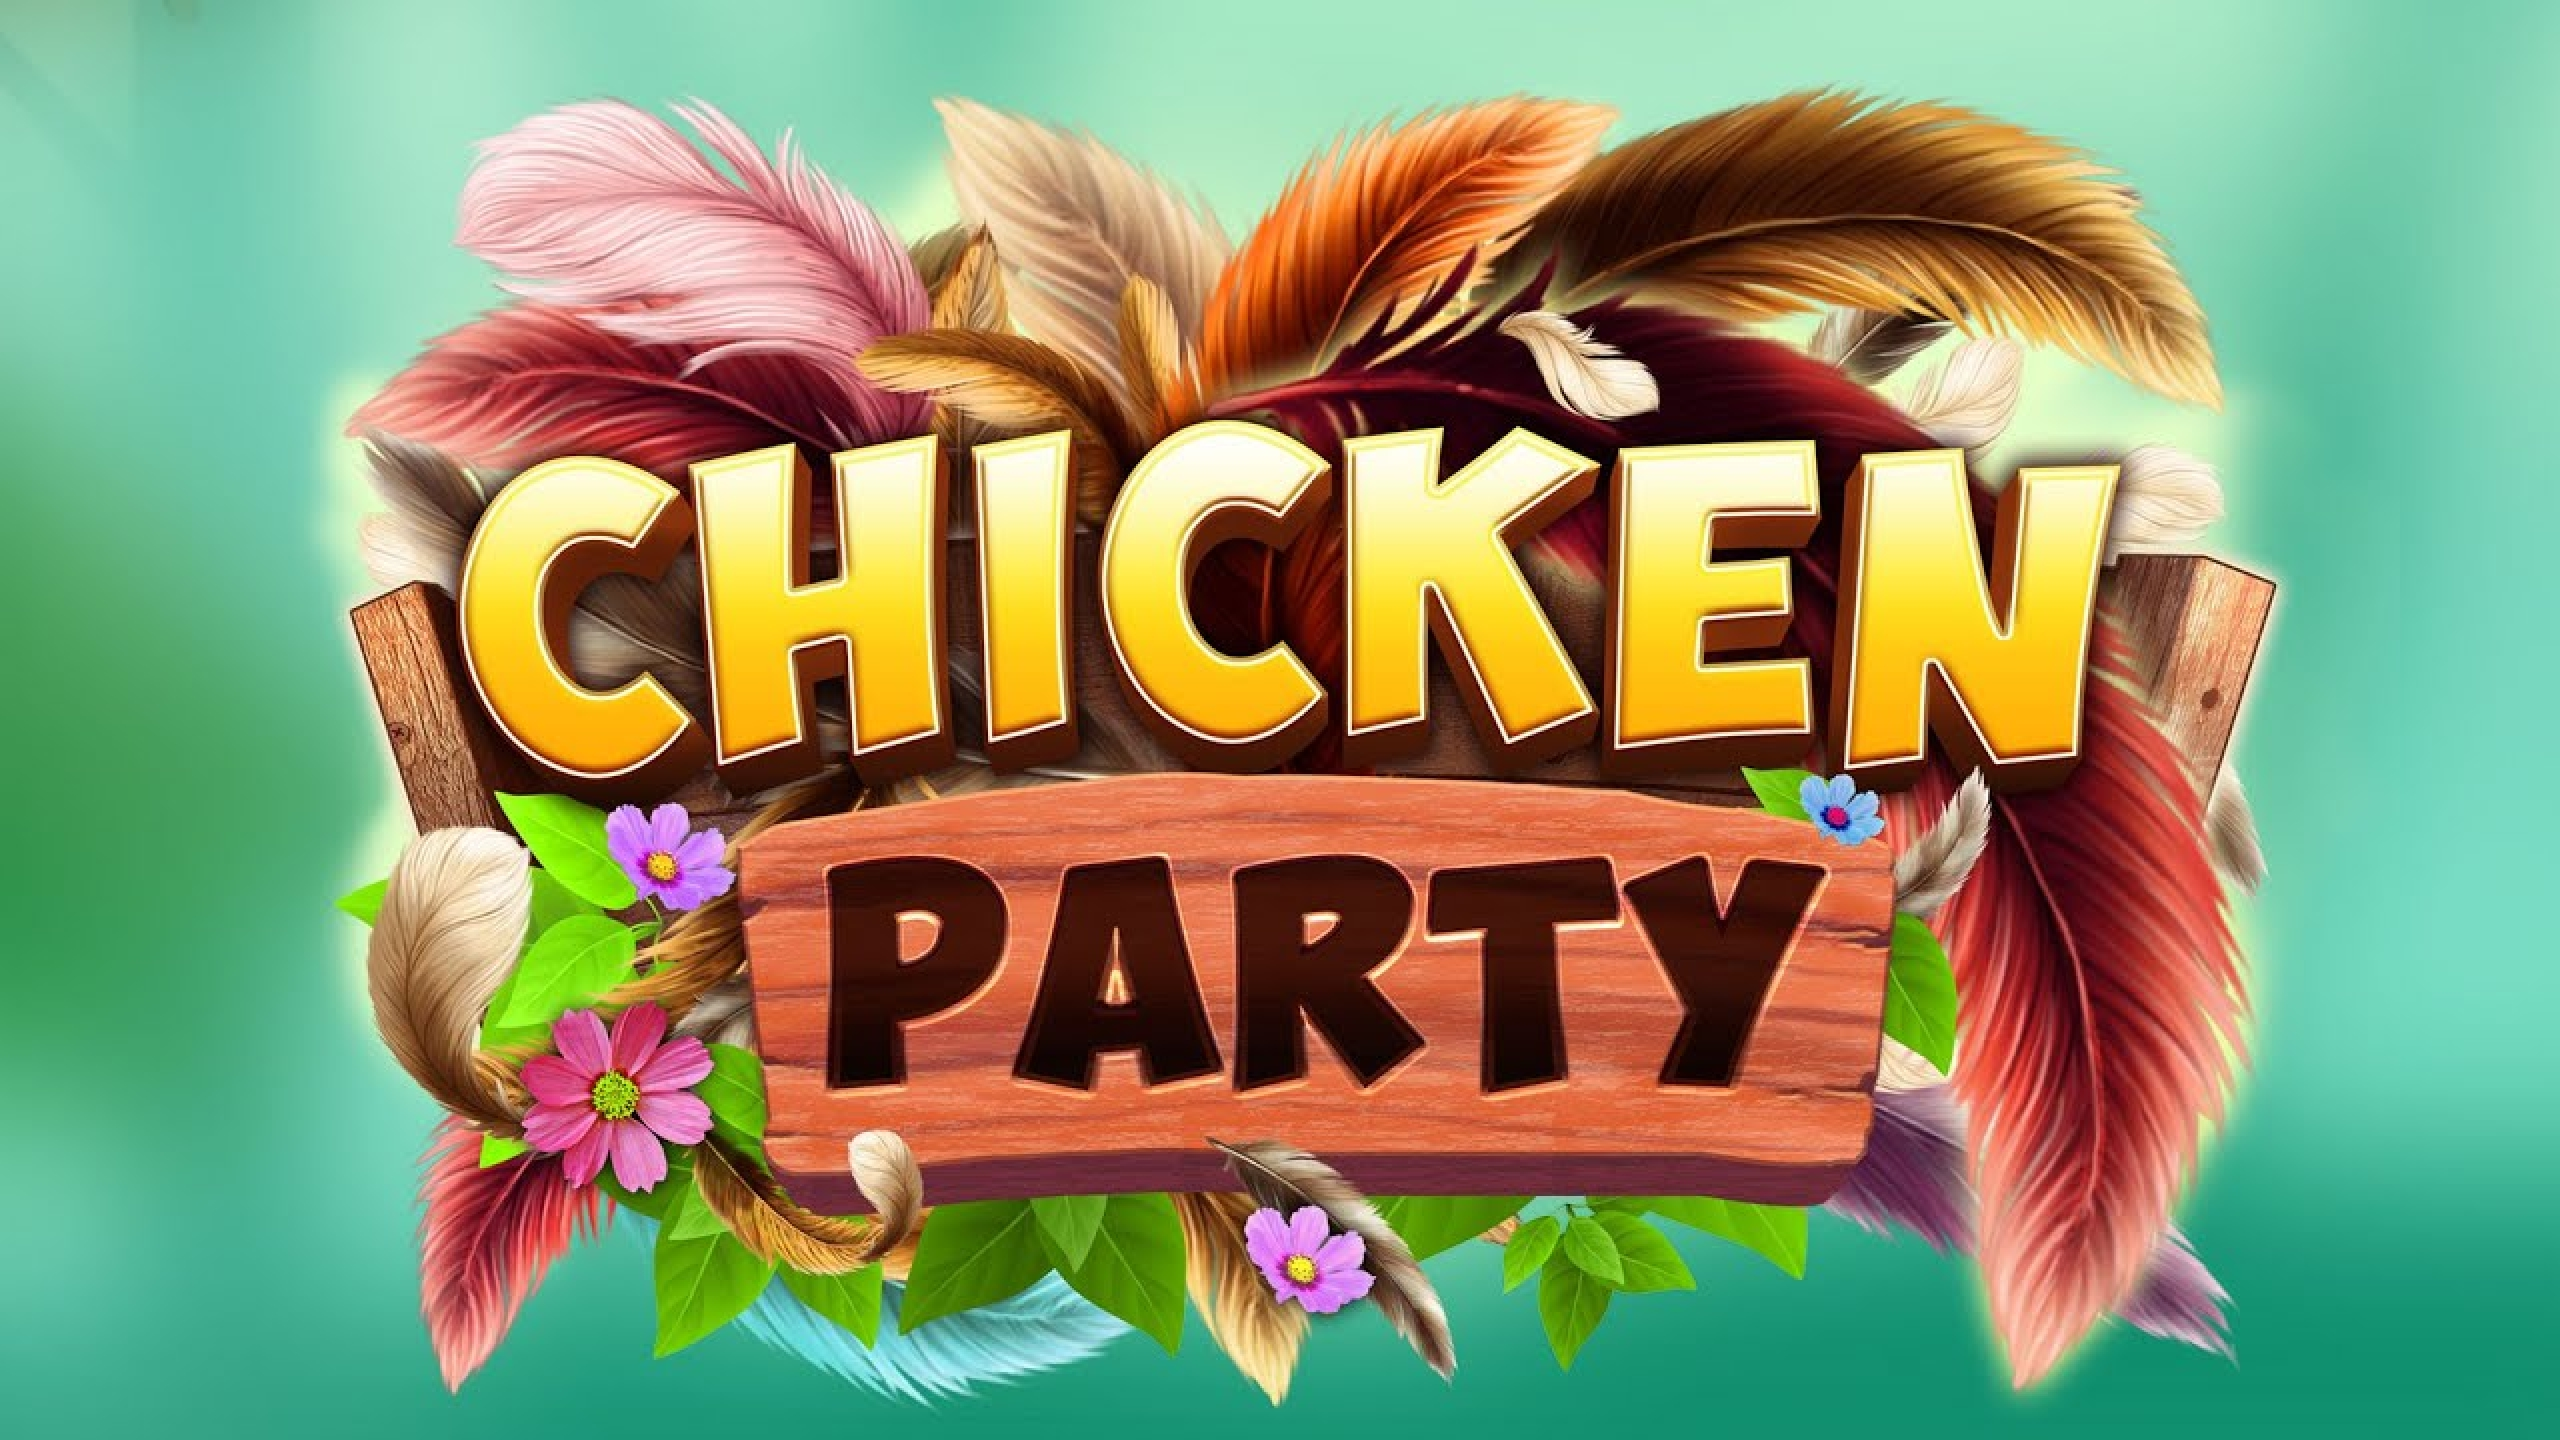 Se Chicken Party Online Slot Demo Game, Booming Games